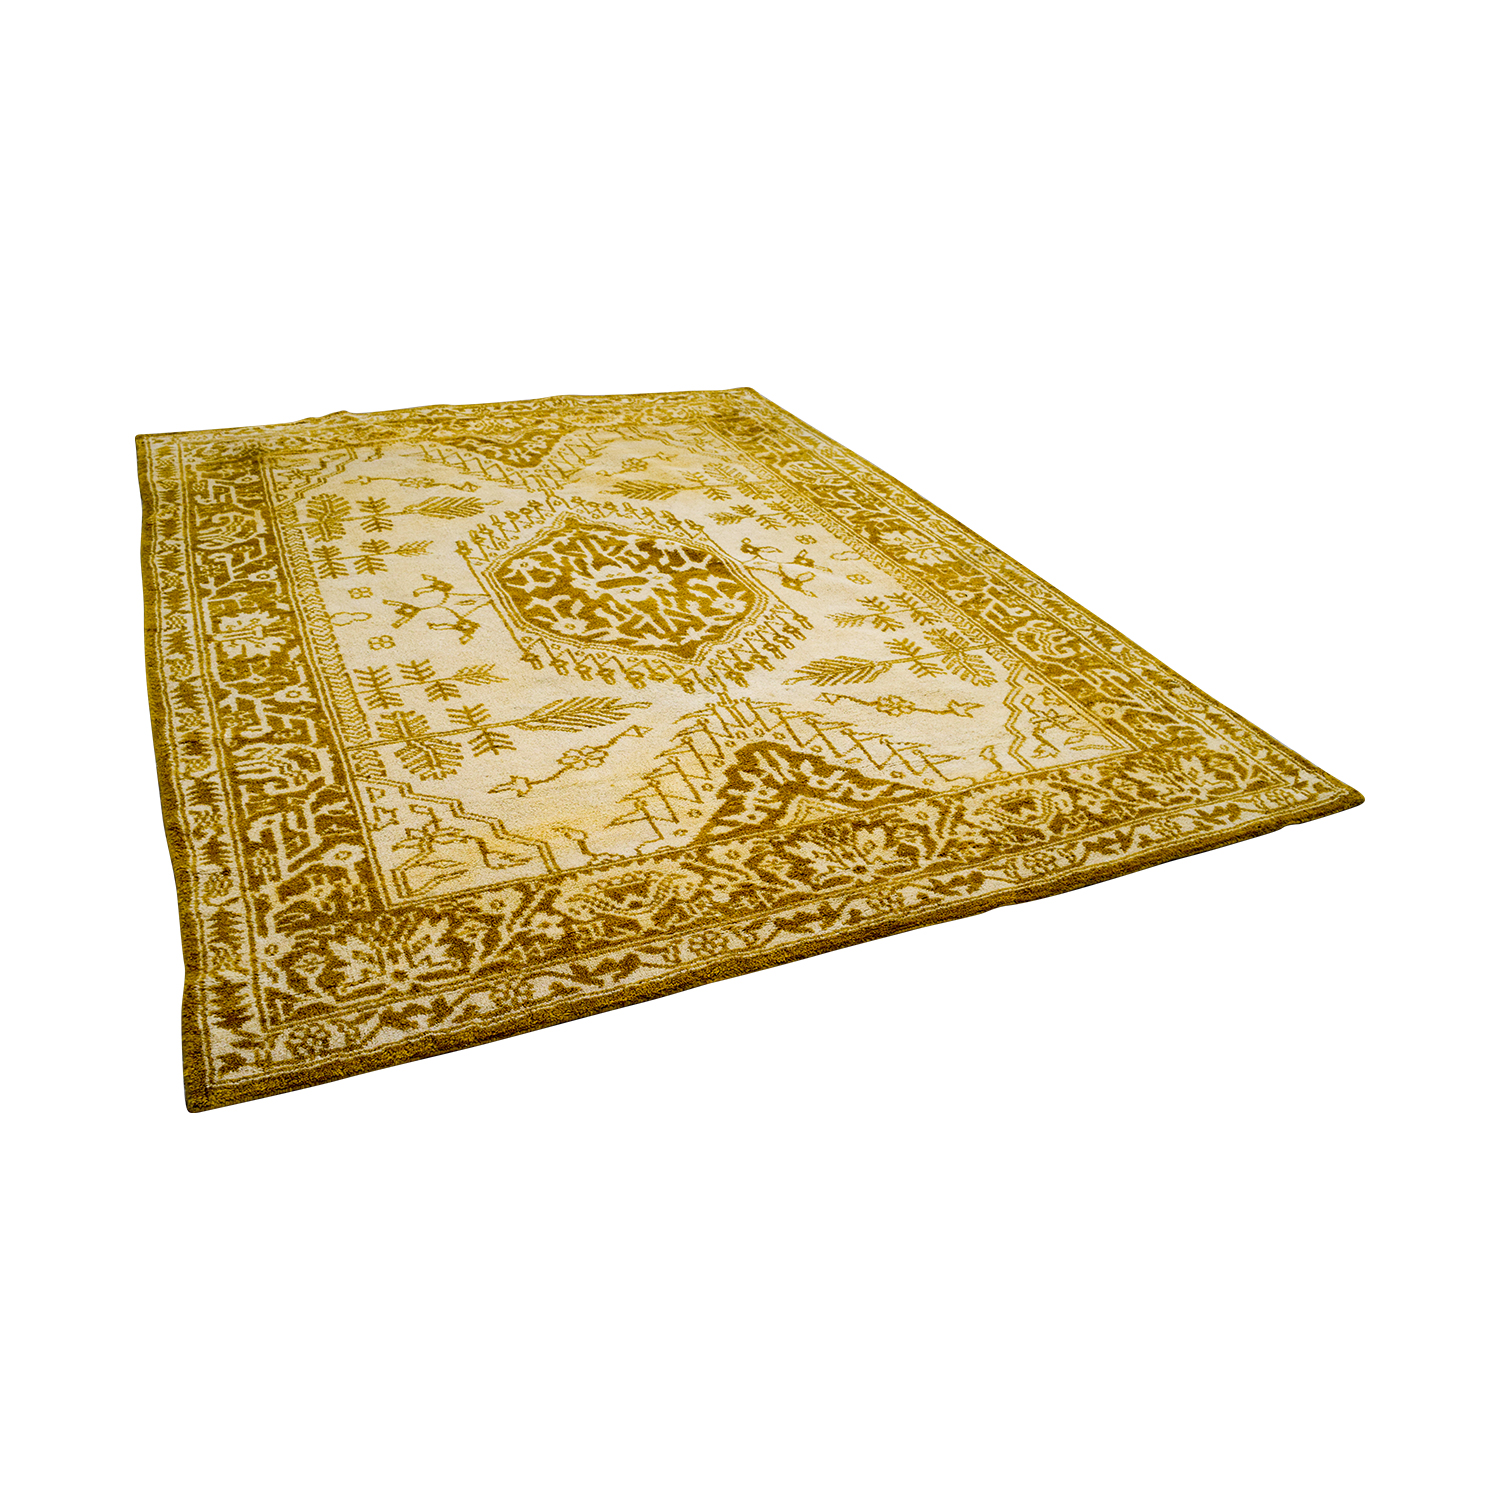 Anthropologie Anthropologie Hand Knotted Arasta Rug YELLOW/WHITE